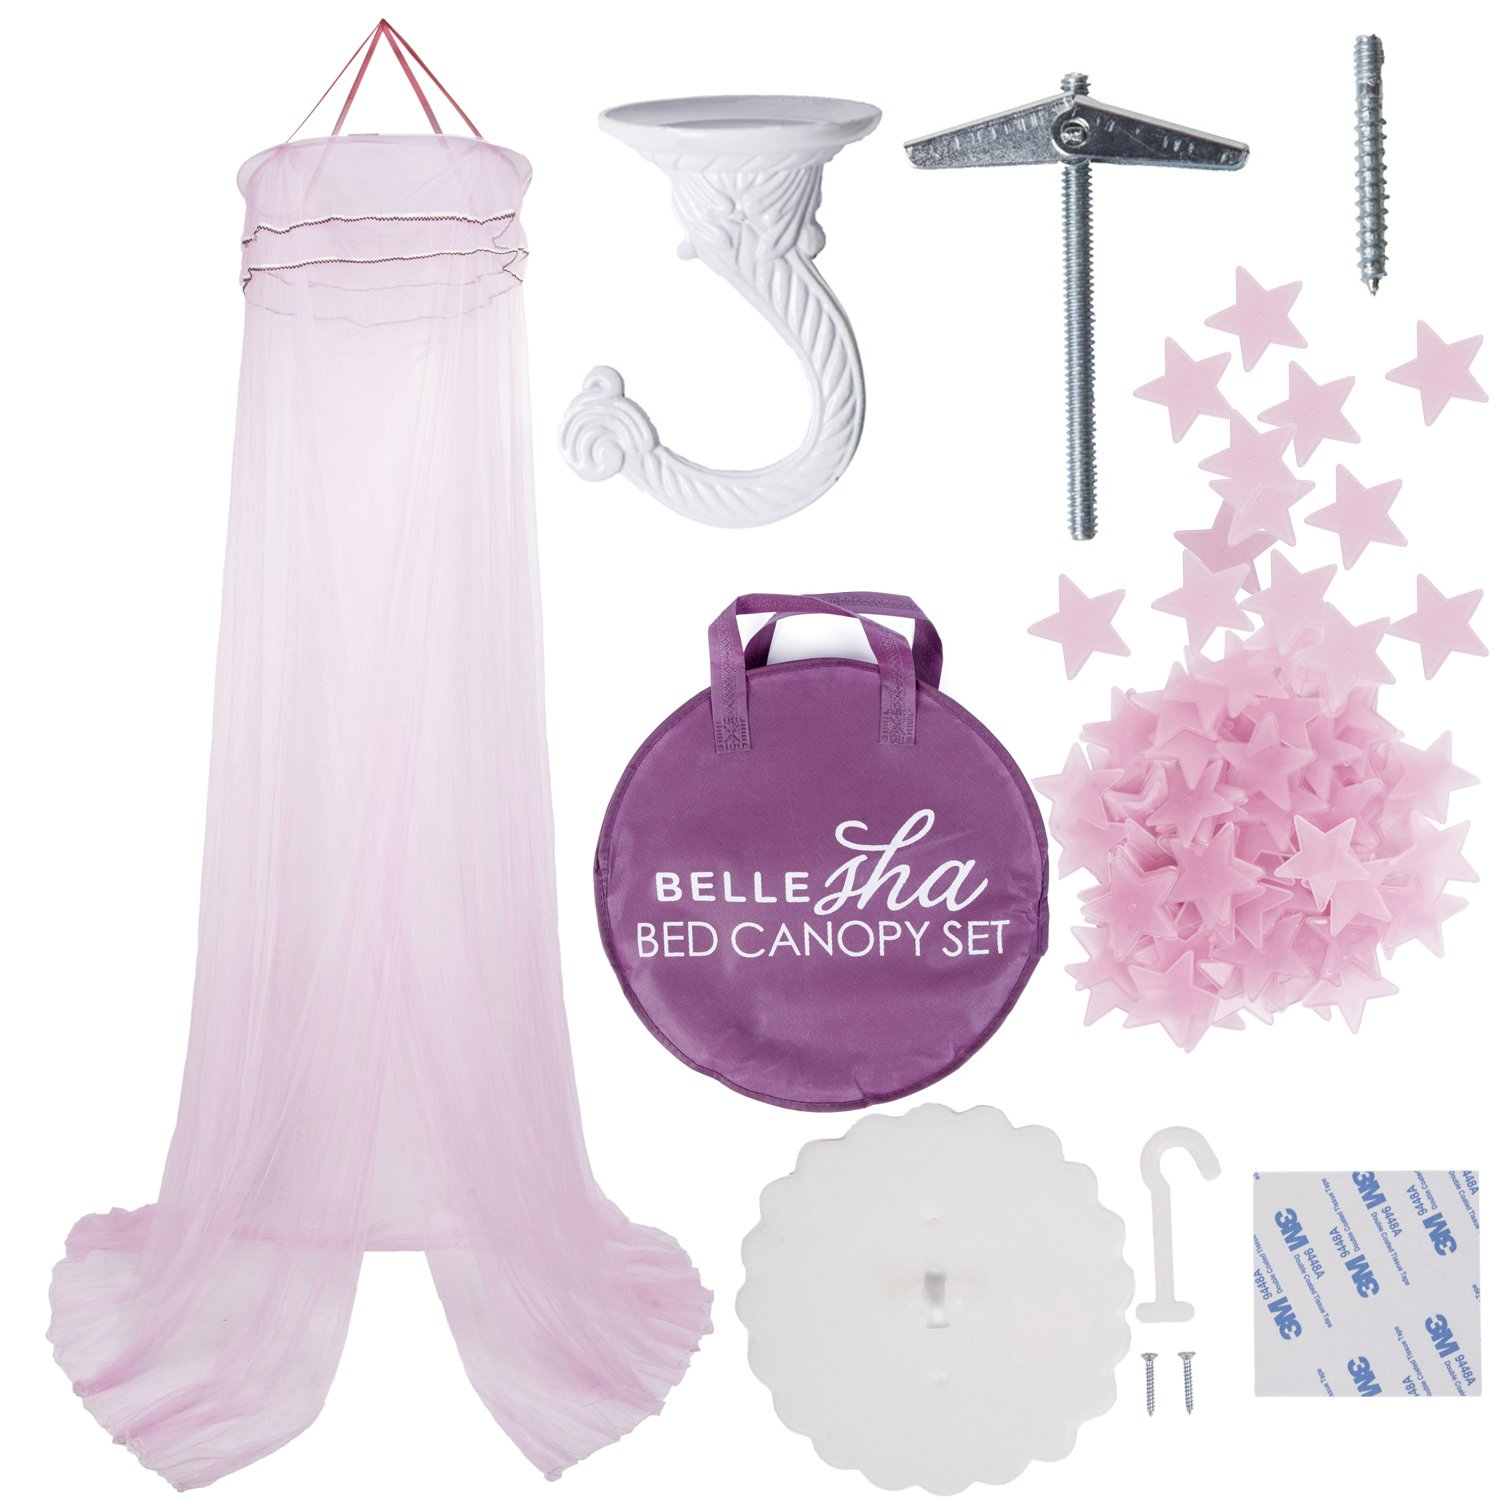 Girls Bed Canopy [Pink] with Glowing Pink Ceiling / Wall Stars - Princess Combo Pack!